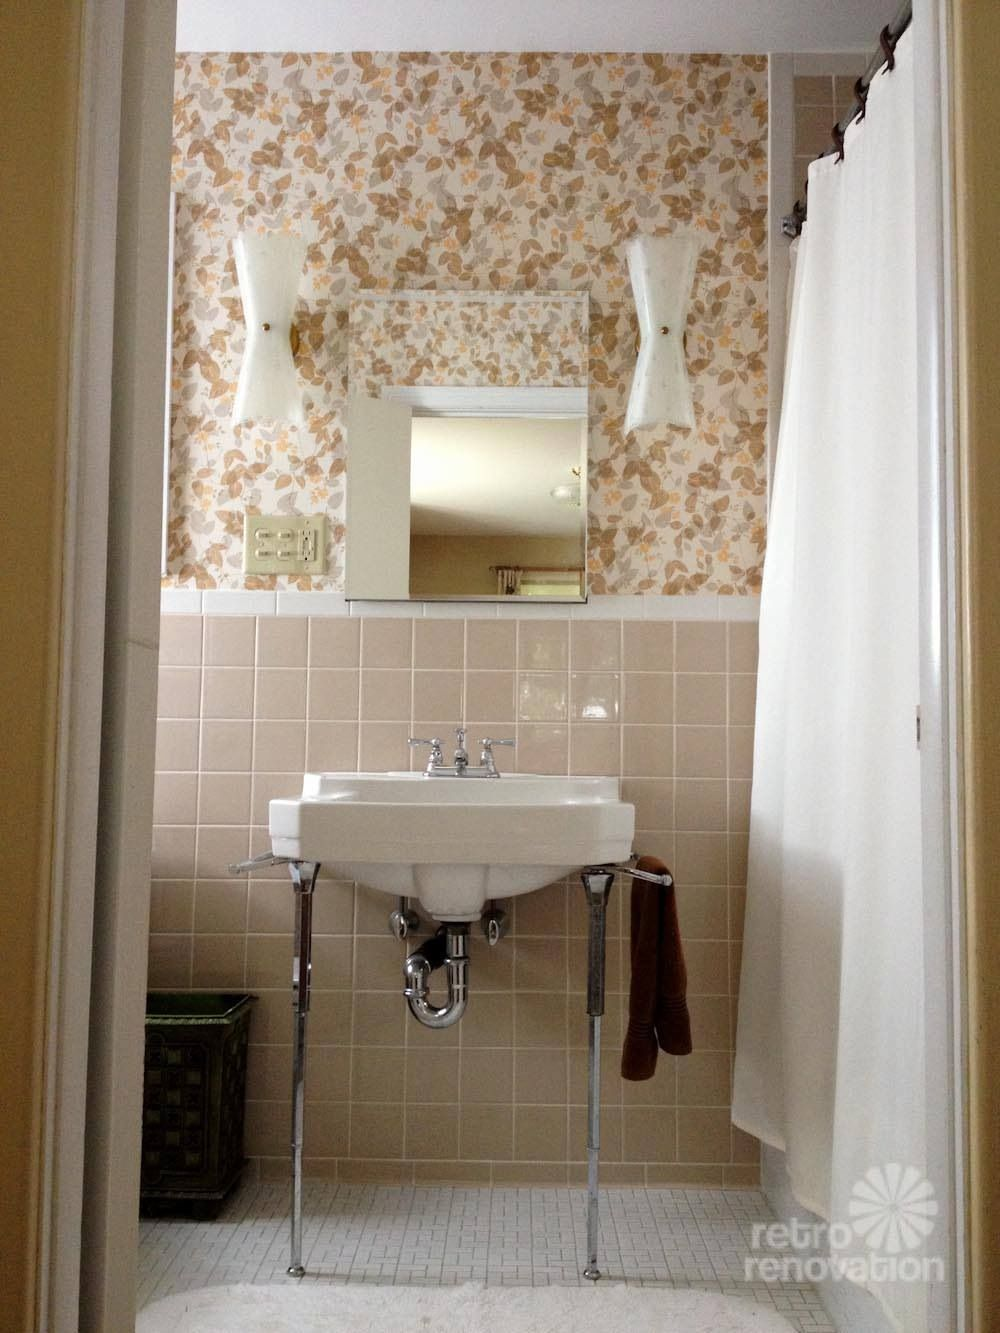 Pin By Keith Rothstein On Vintage Bathrooms Bathroom Wallpaper Retro Retro Bathrooms Bathroom Wallpaper